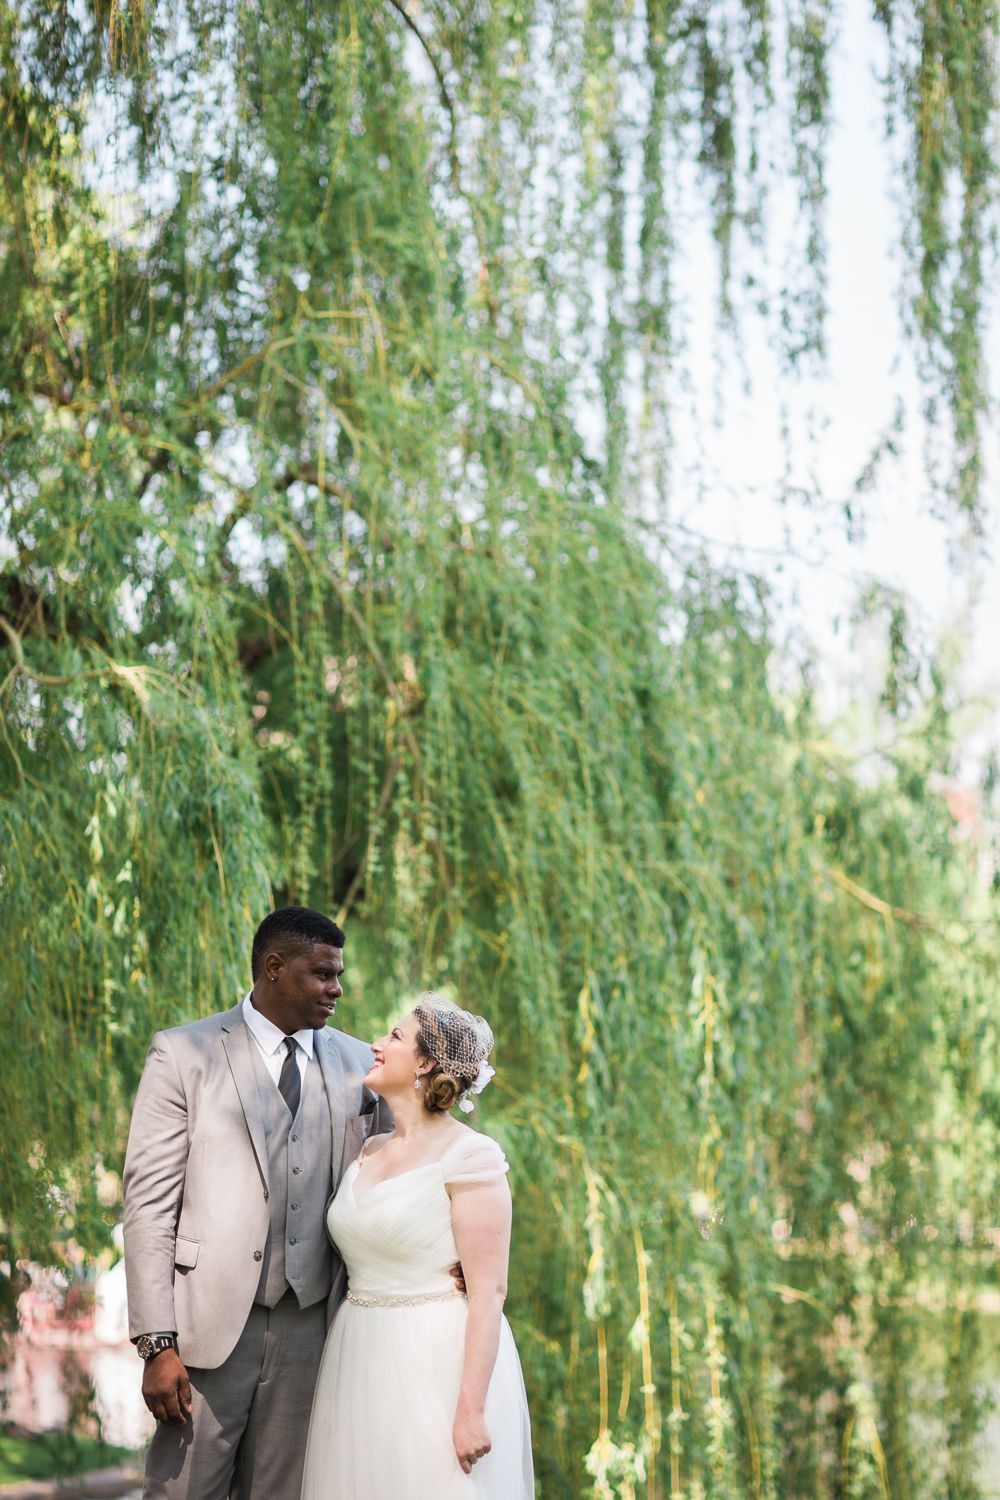 What a perfect day for an elopement. The day couldn't have been any prettier when Stephanie and Sterling met with their family and friends for a sweet, romantic (and funny!) ceremony overlooking the pond. Sterling looked very dapper in his grey suit and Stephanie looked like a Victorian dream with her beautiful birdcage veil and flowers in her hair.